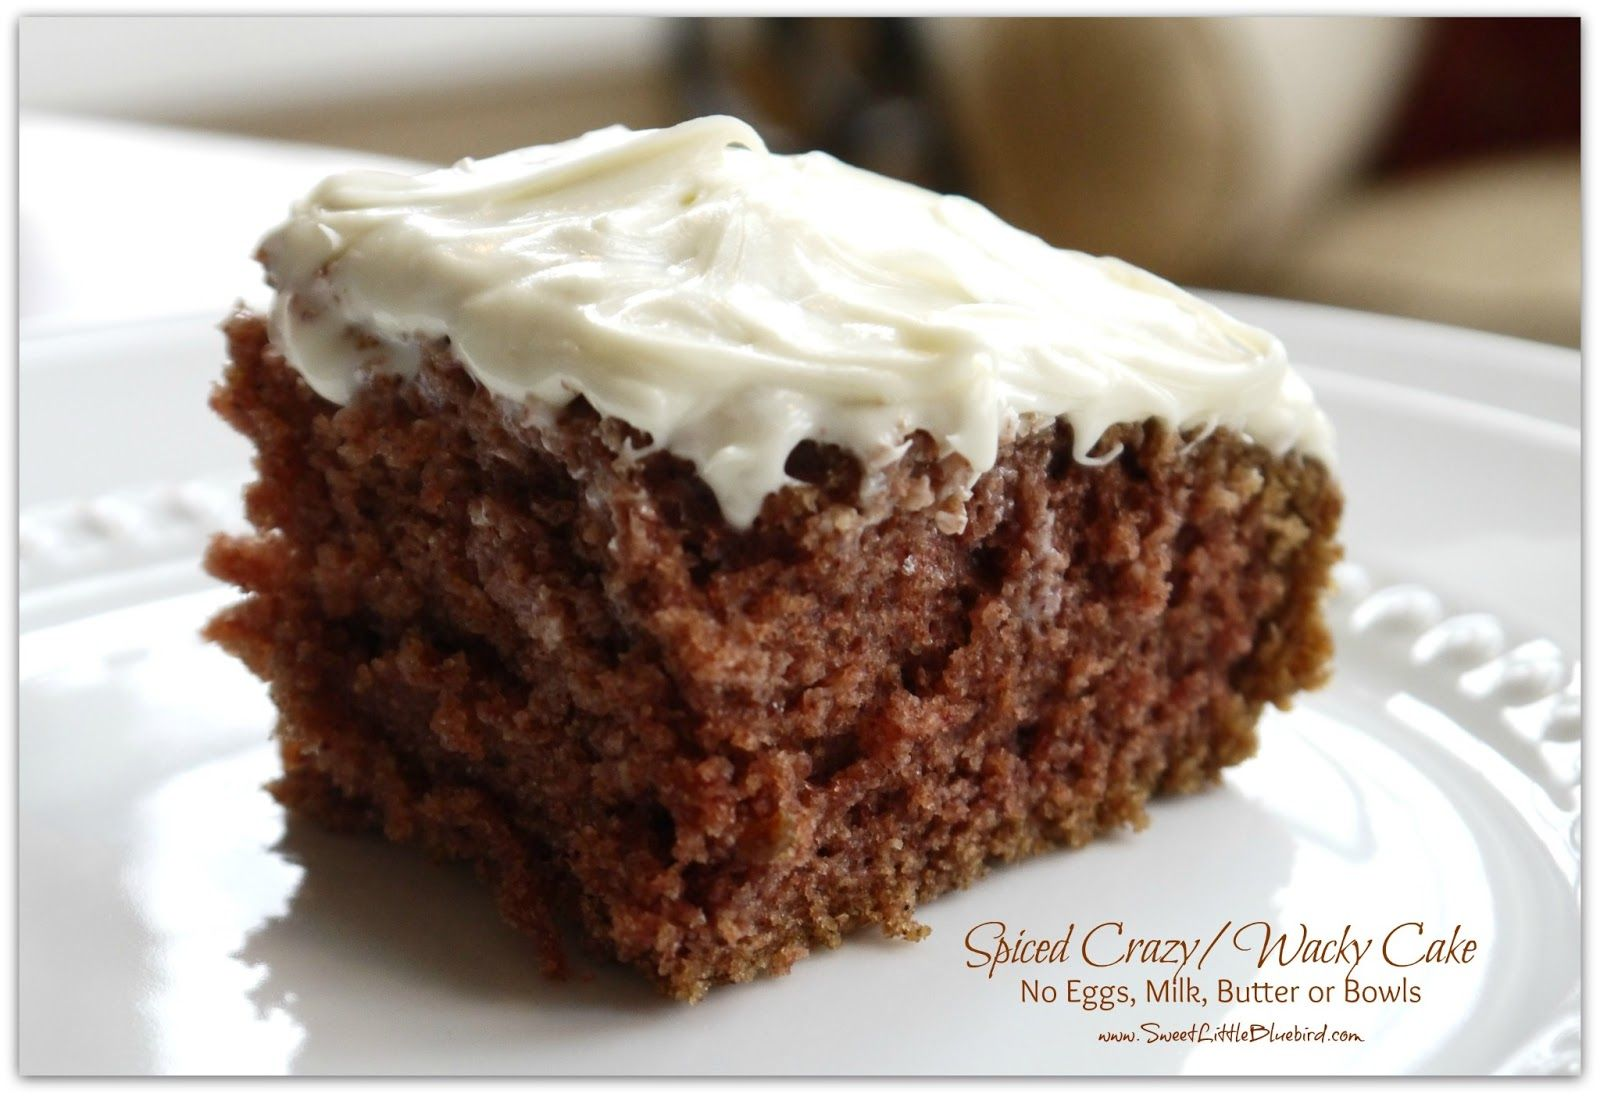 No milk, eggs, butter or bowls - this is a depression era cake mixed in the baking pan and known by many names:  Wacky Cake, Depressions Cake Vinegar and Oil Cake, Happy Valley Cake, and Dump Cake.  Any way you look at it - an easy and tasty dessert - very moist, easy and delicious!